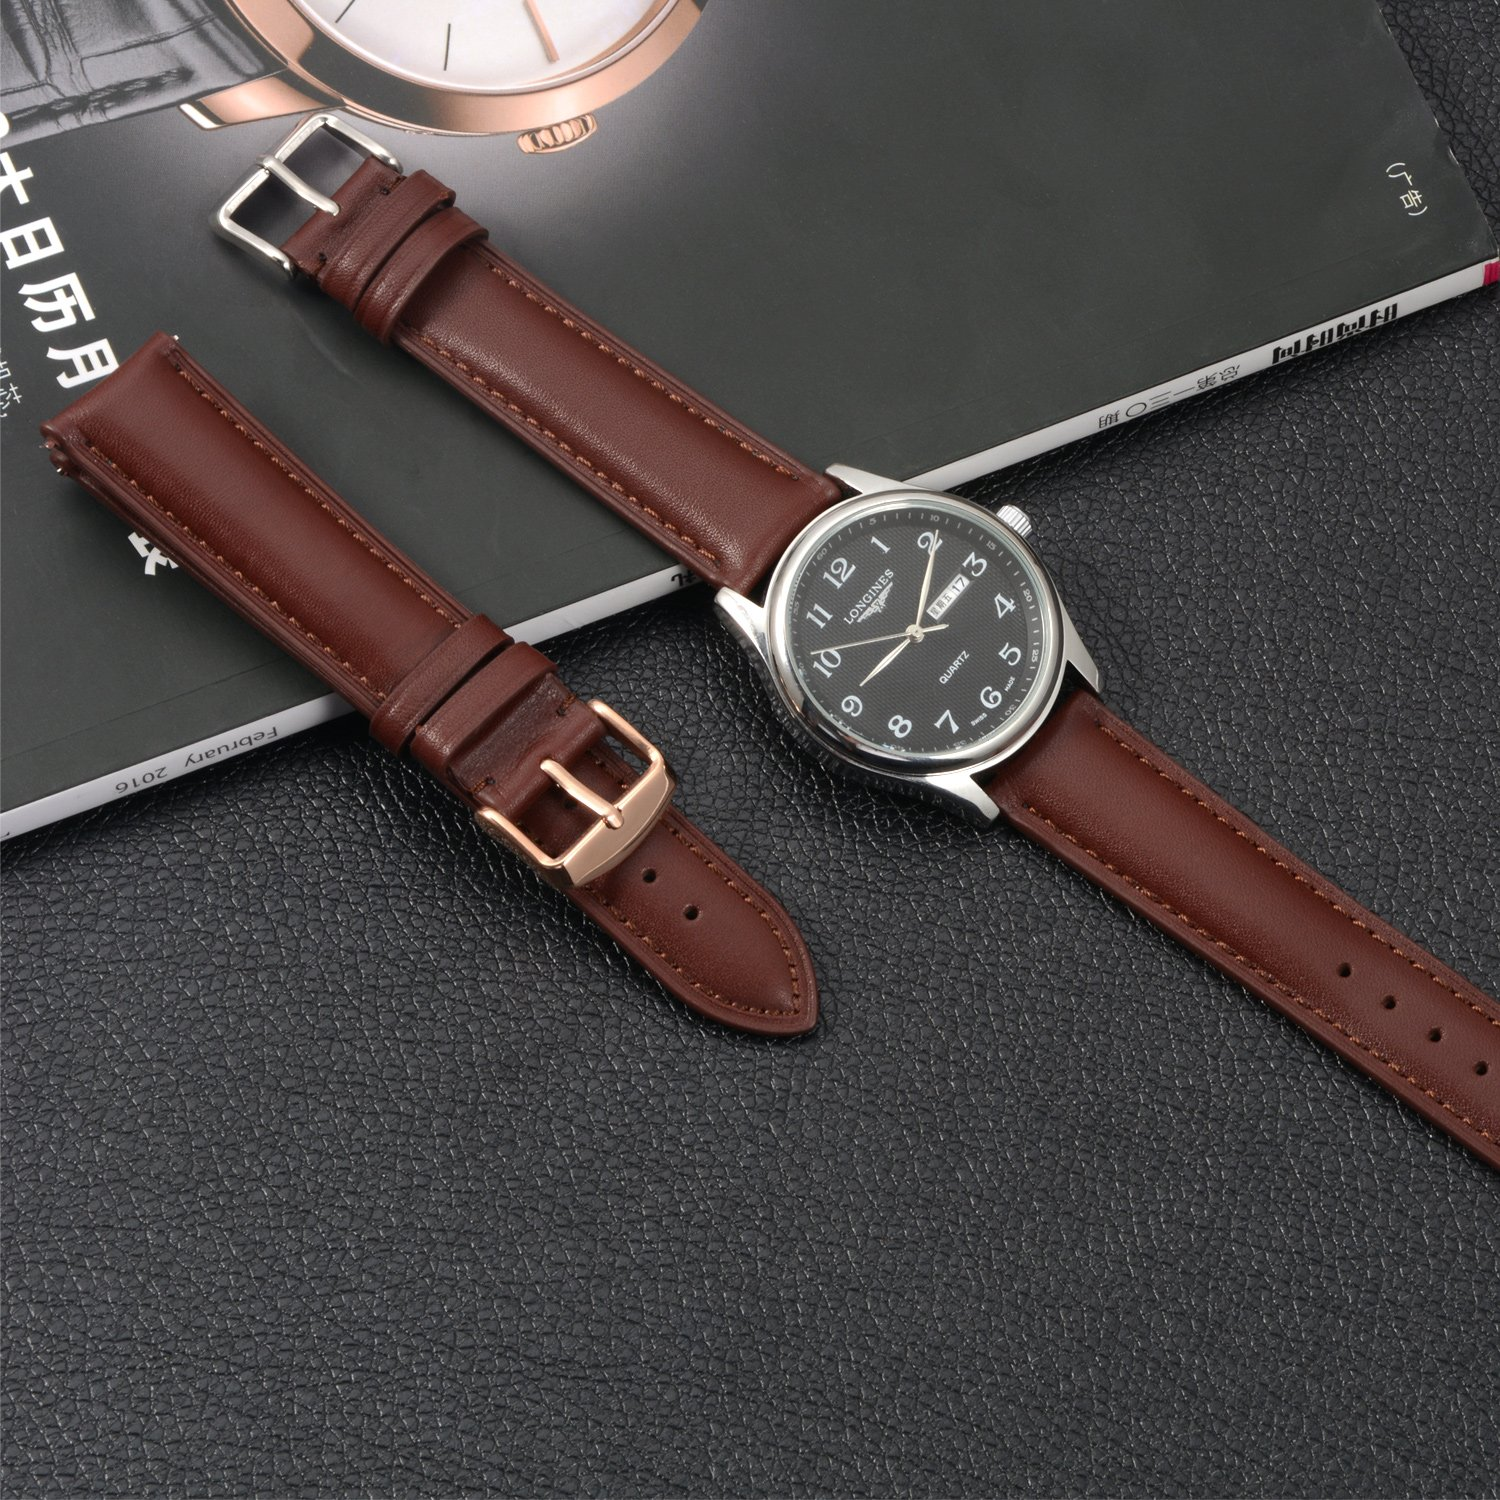 Quick Release Leather Watch Band 22mm Brown Replacement Watch Strap Genuine Polished Watch Clasp Buckle Gold Rose Padded Super Soft (18mm 20mm 22mm) by TStrap (Image #4)